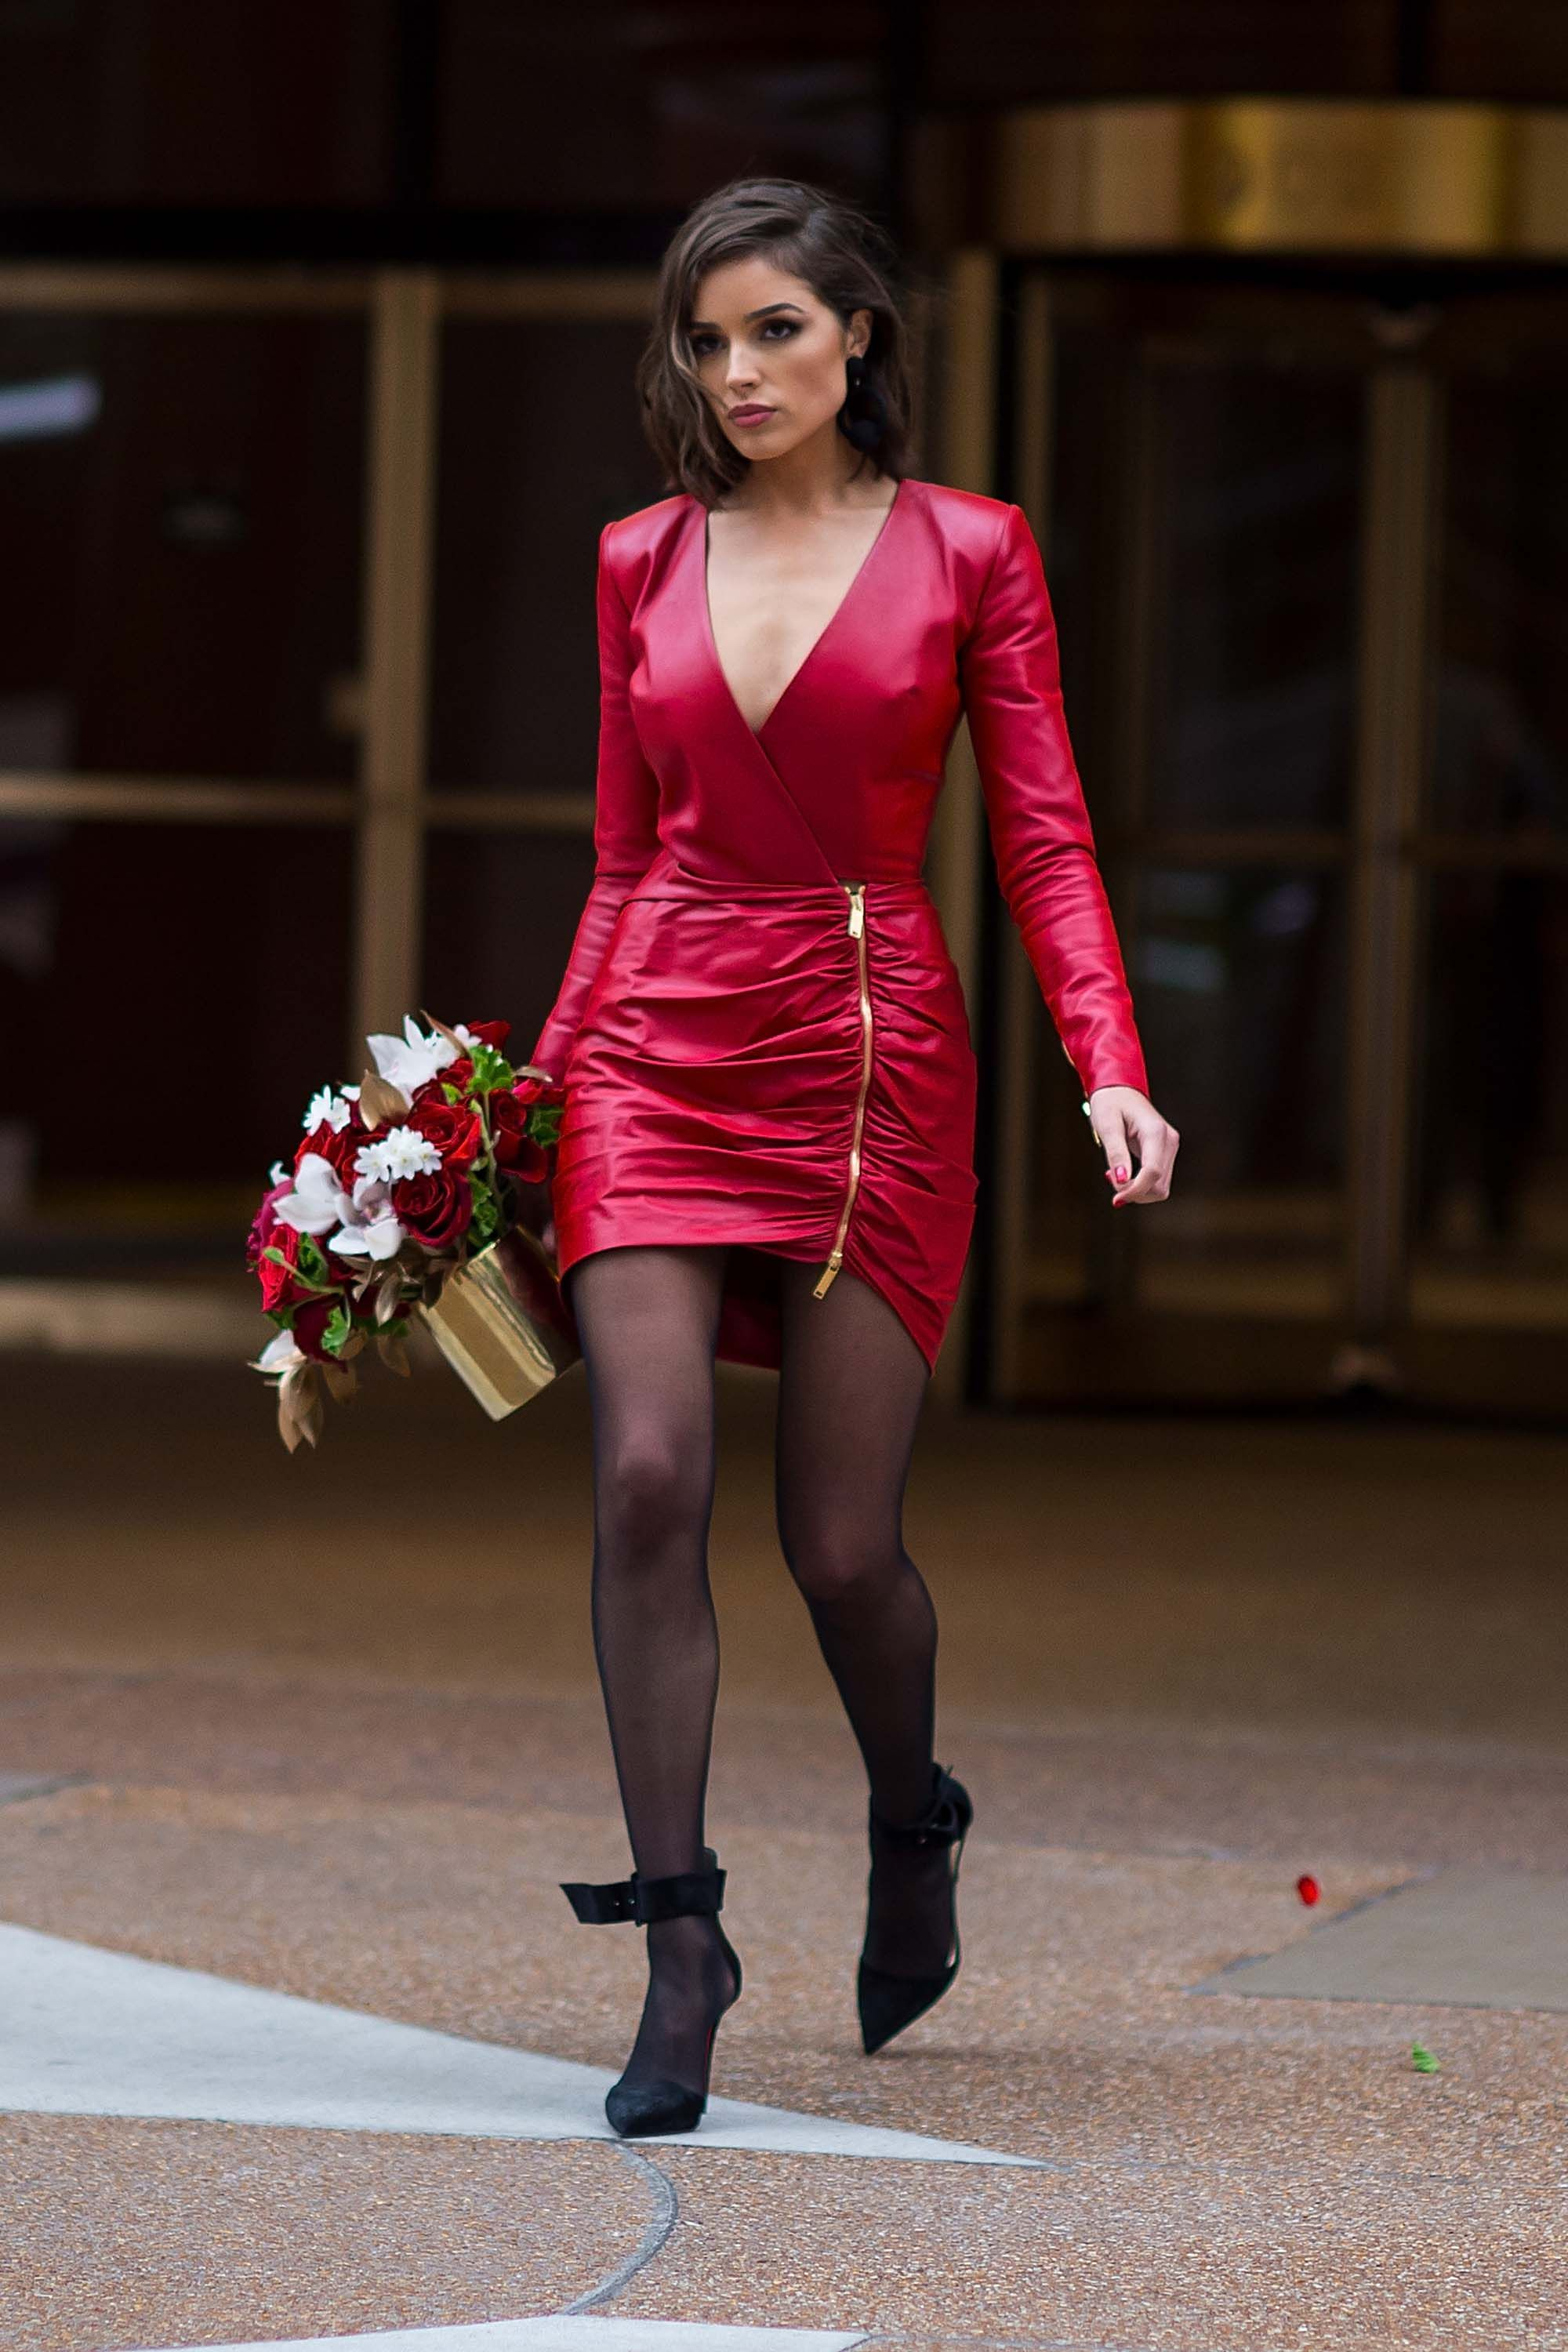 98913c27e4d1c Olivia Culpo out and about in Midtown NYC | 100% Sexy Leather Ladies ...